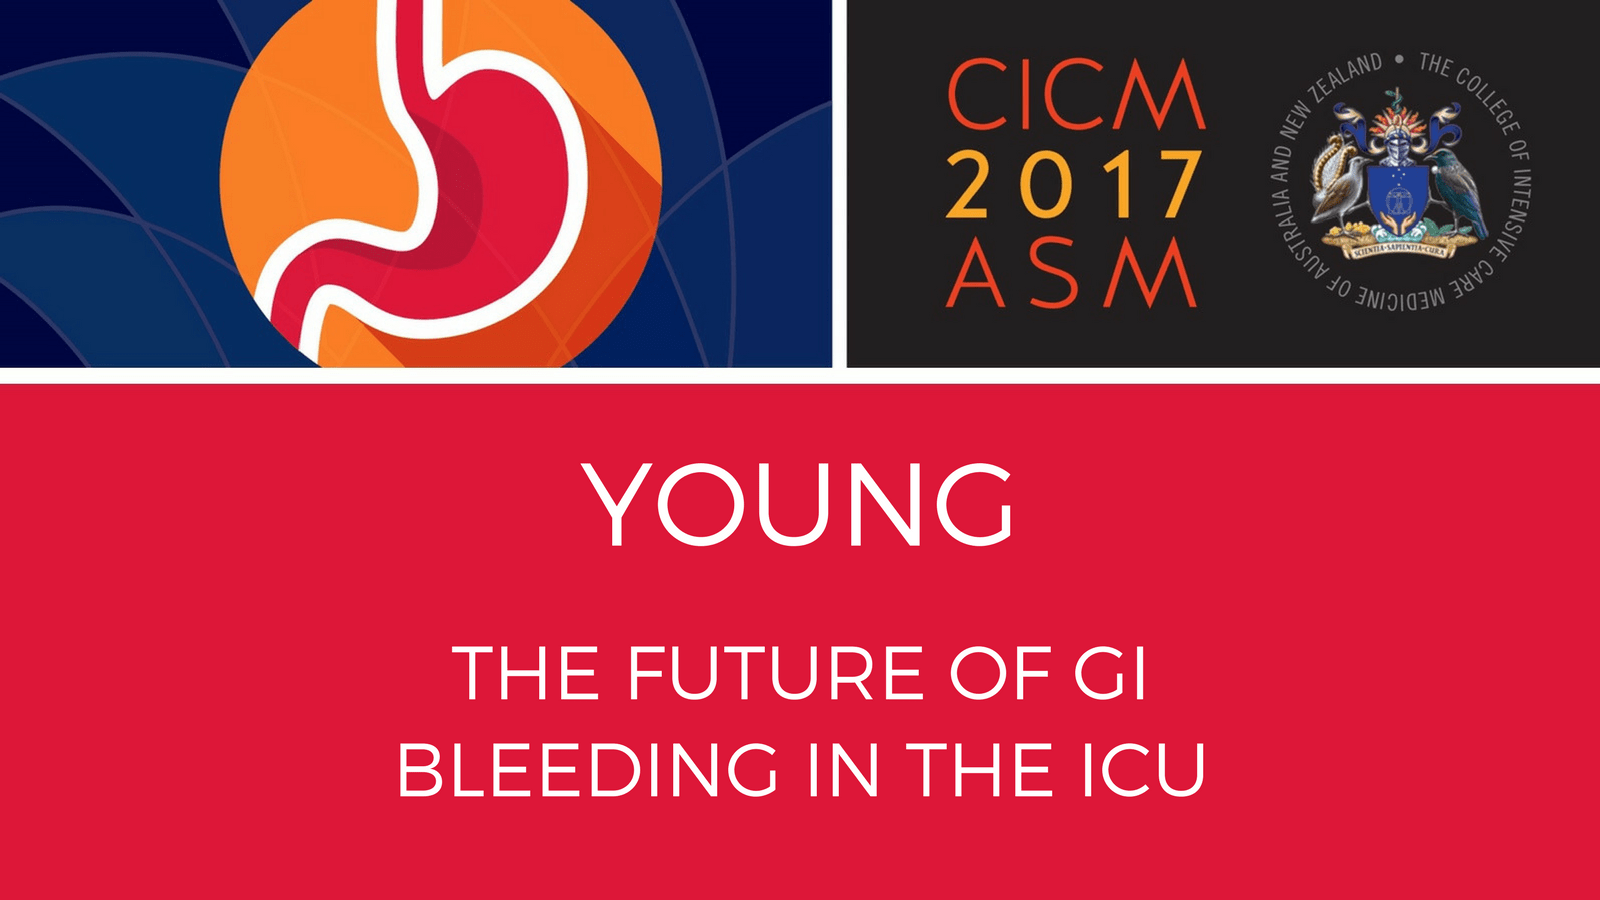 The future of GI bleeding in the ICU